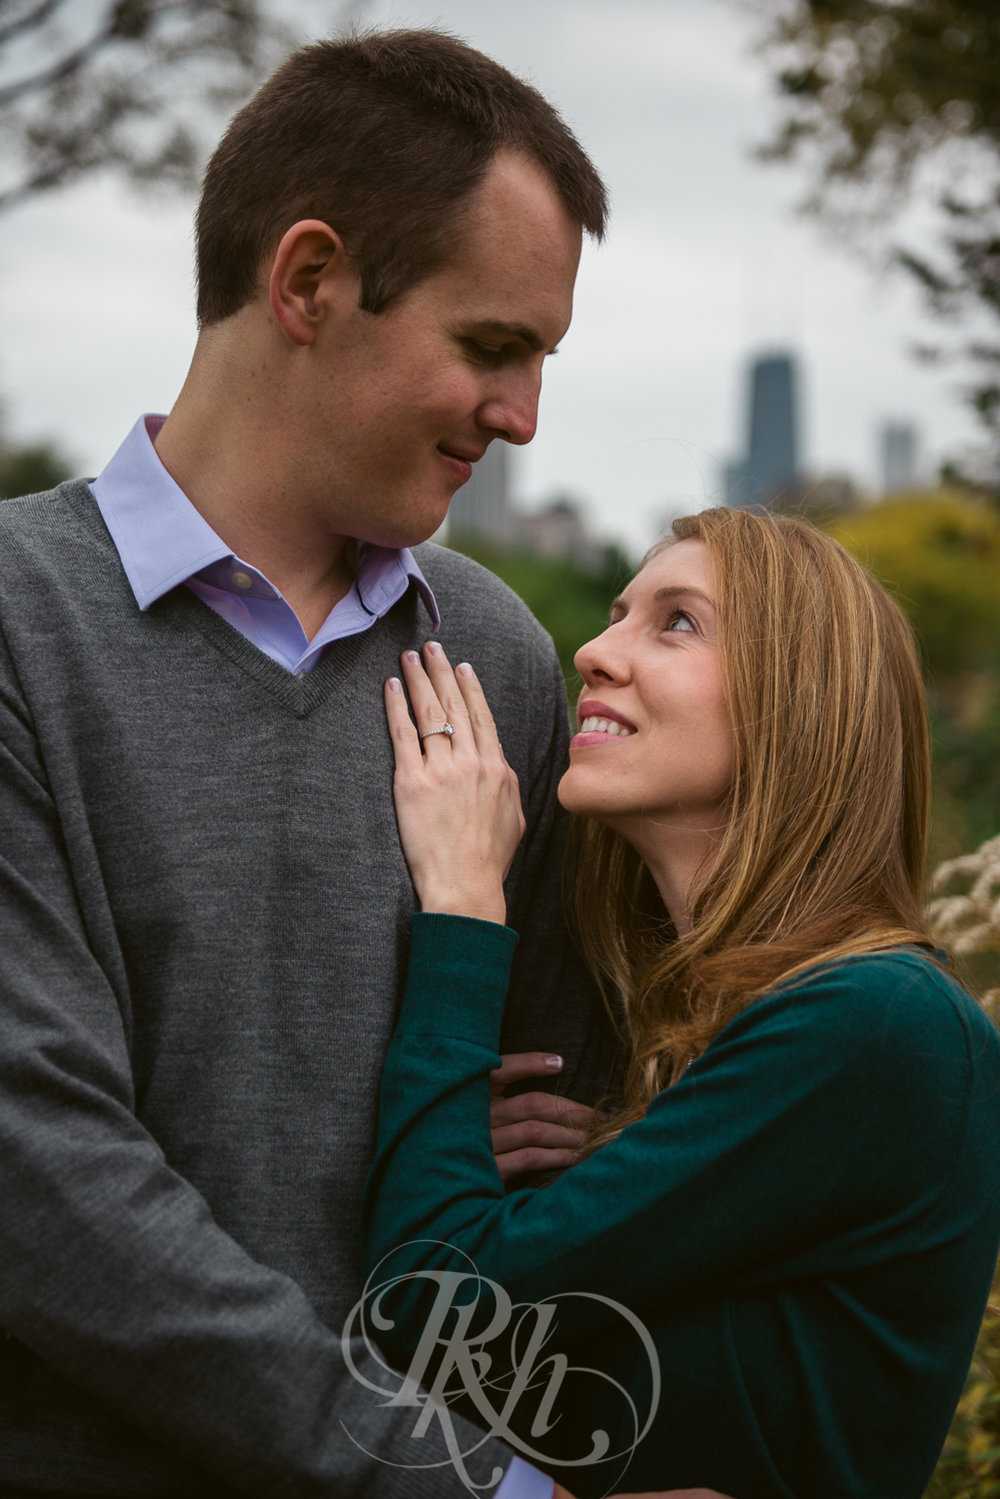 Theresa & Alain - Chicago Engagement Photograhy - RKH Images -3.jpg